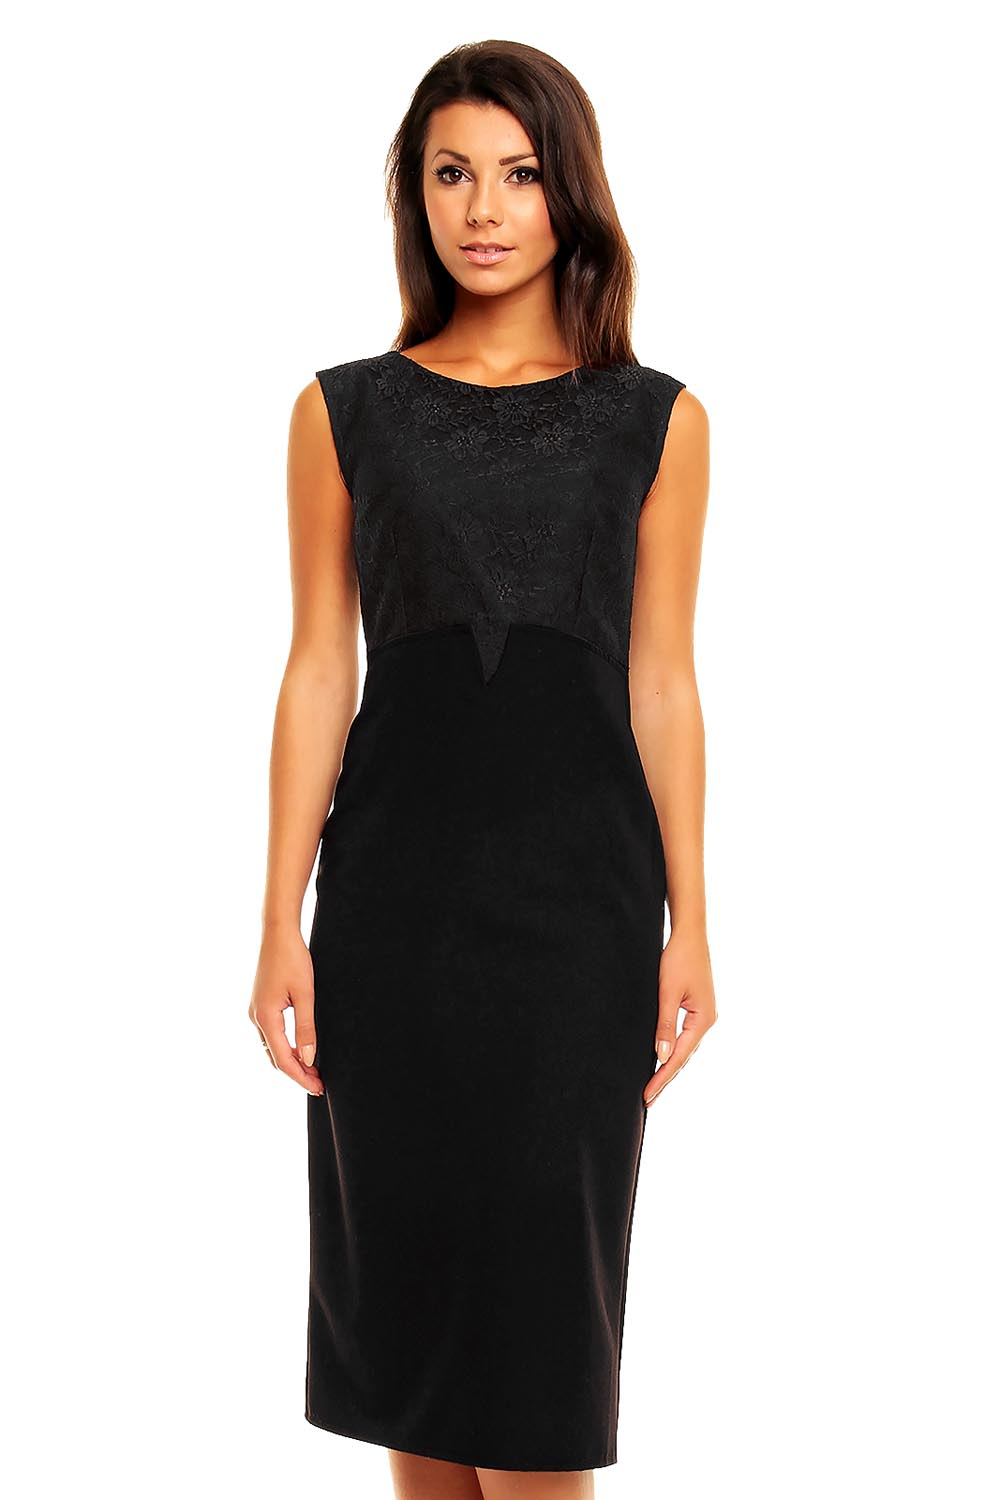 black lovely high waisted pencil cut dress